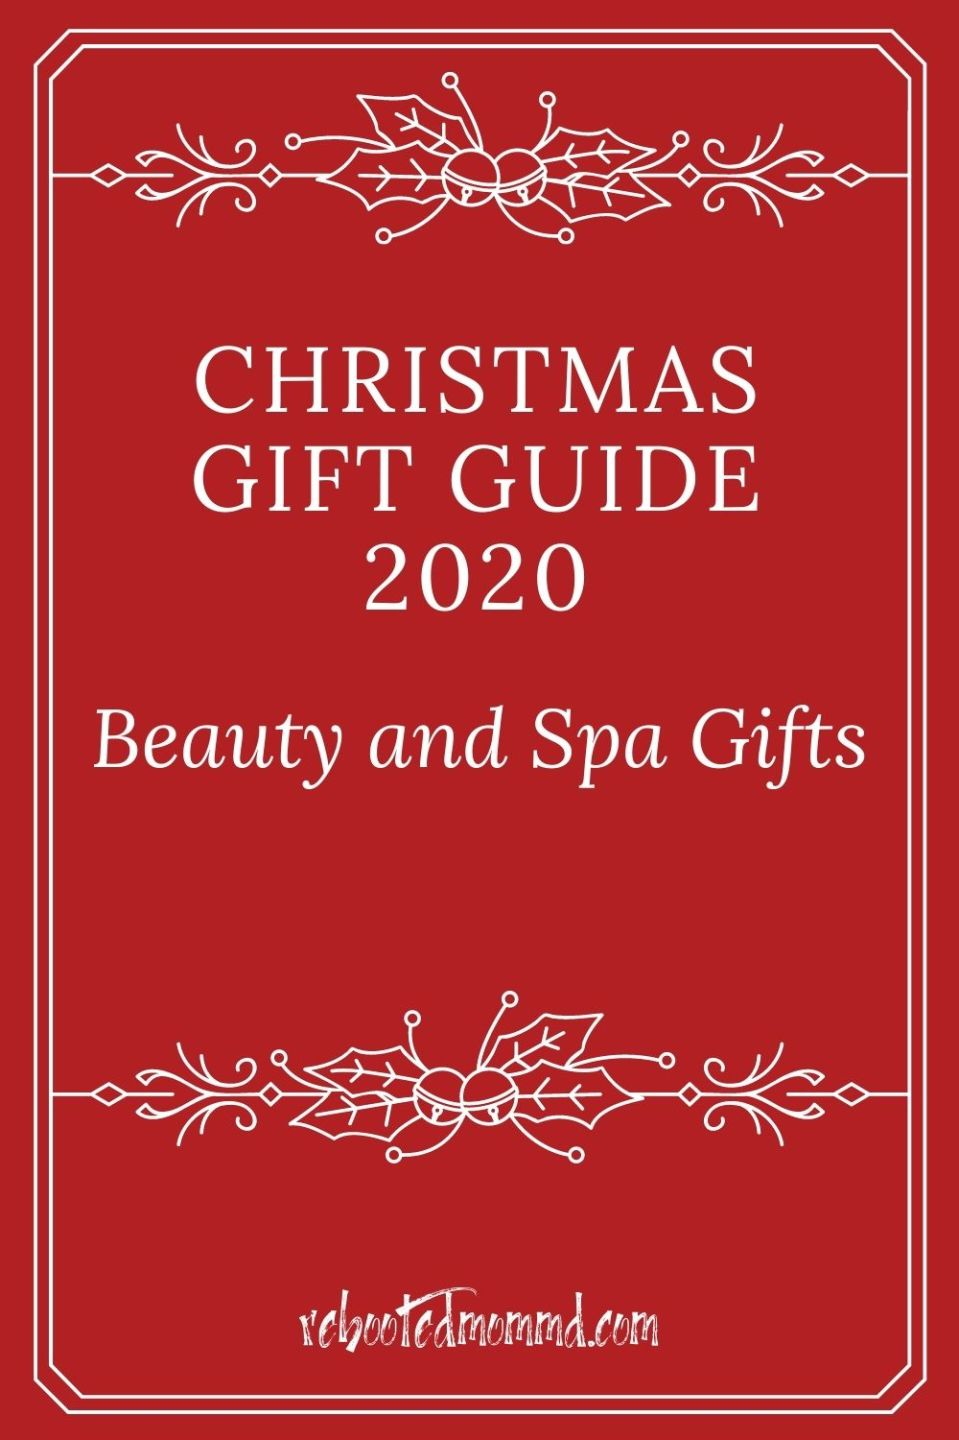 Christmas Gift Guide 2020: Beauty and Spa Gifts